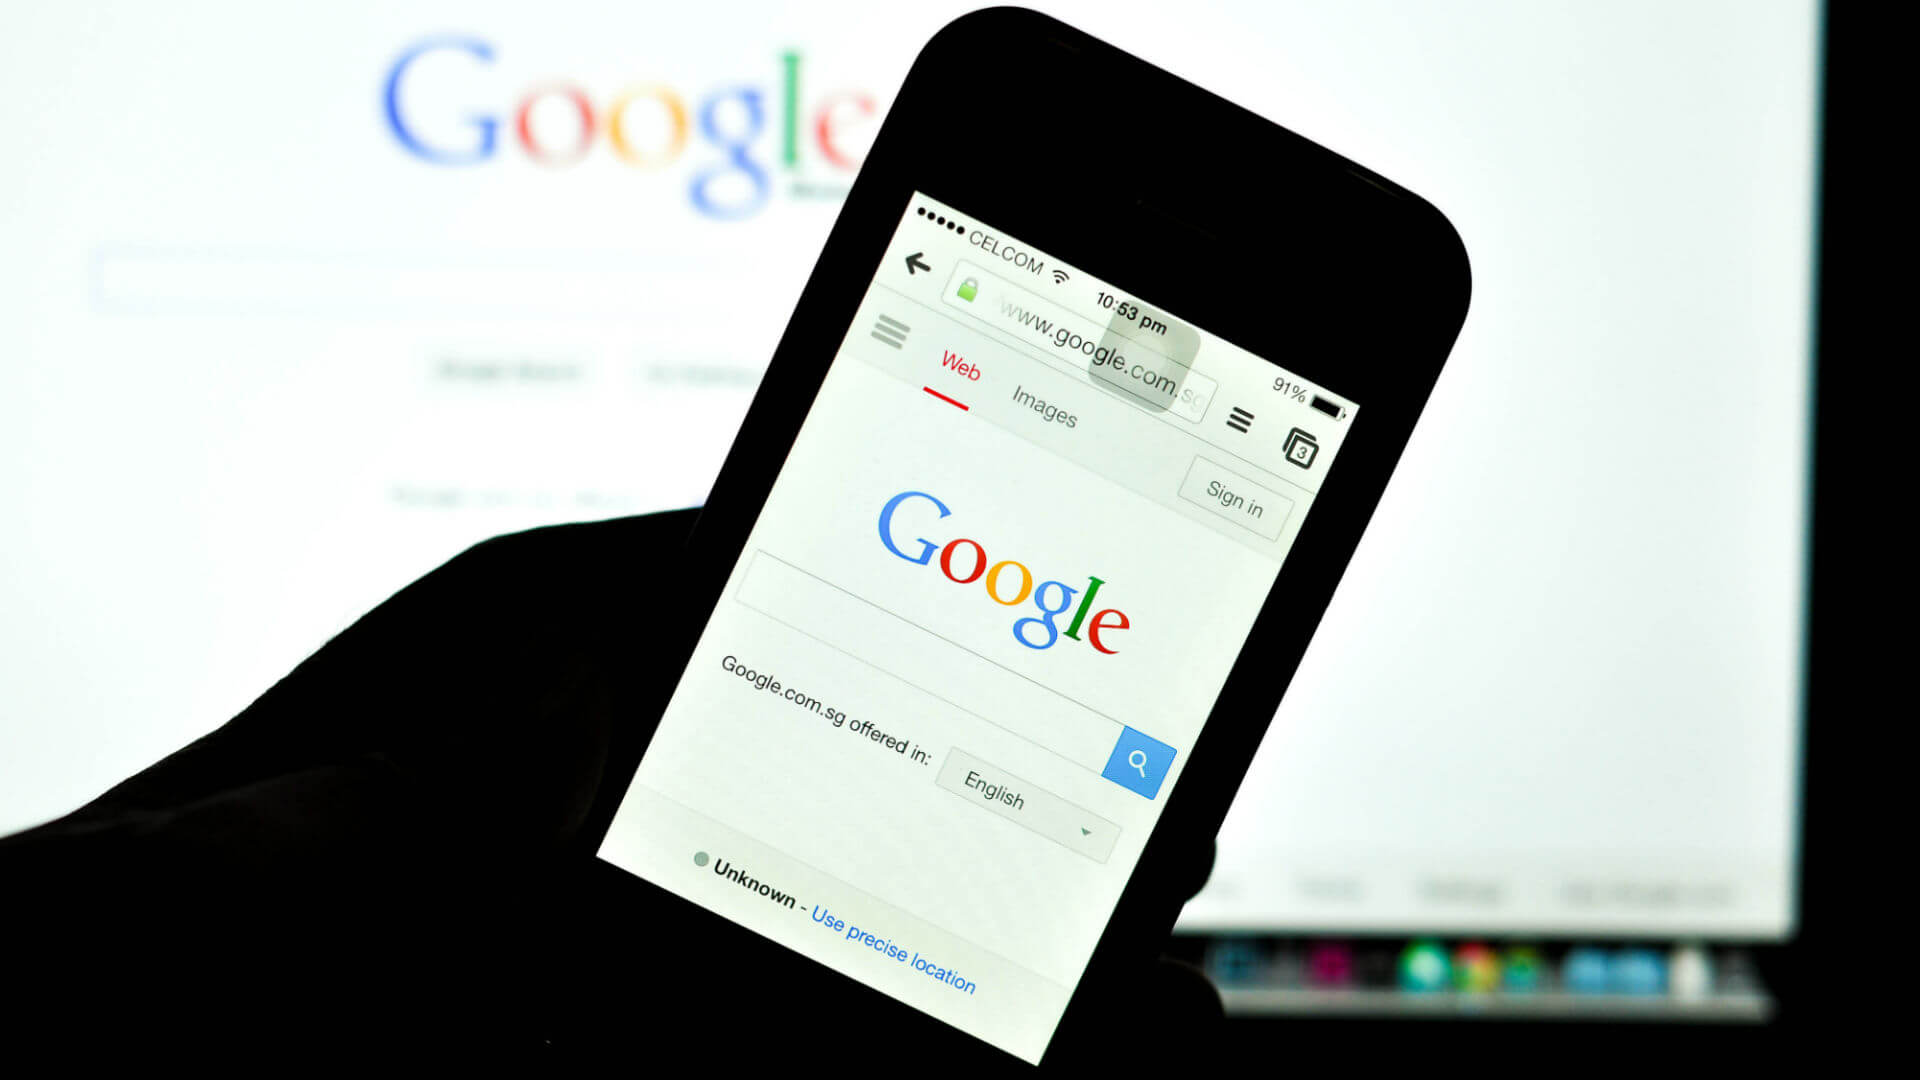 Google adds trending searches and instant answers to iOS app